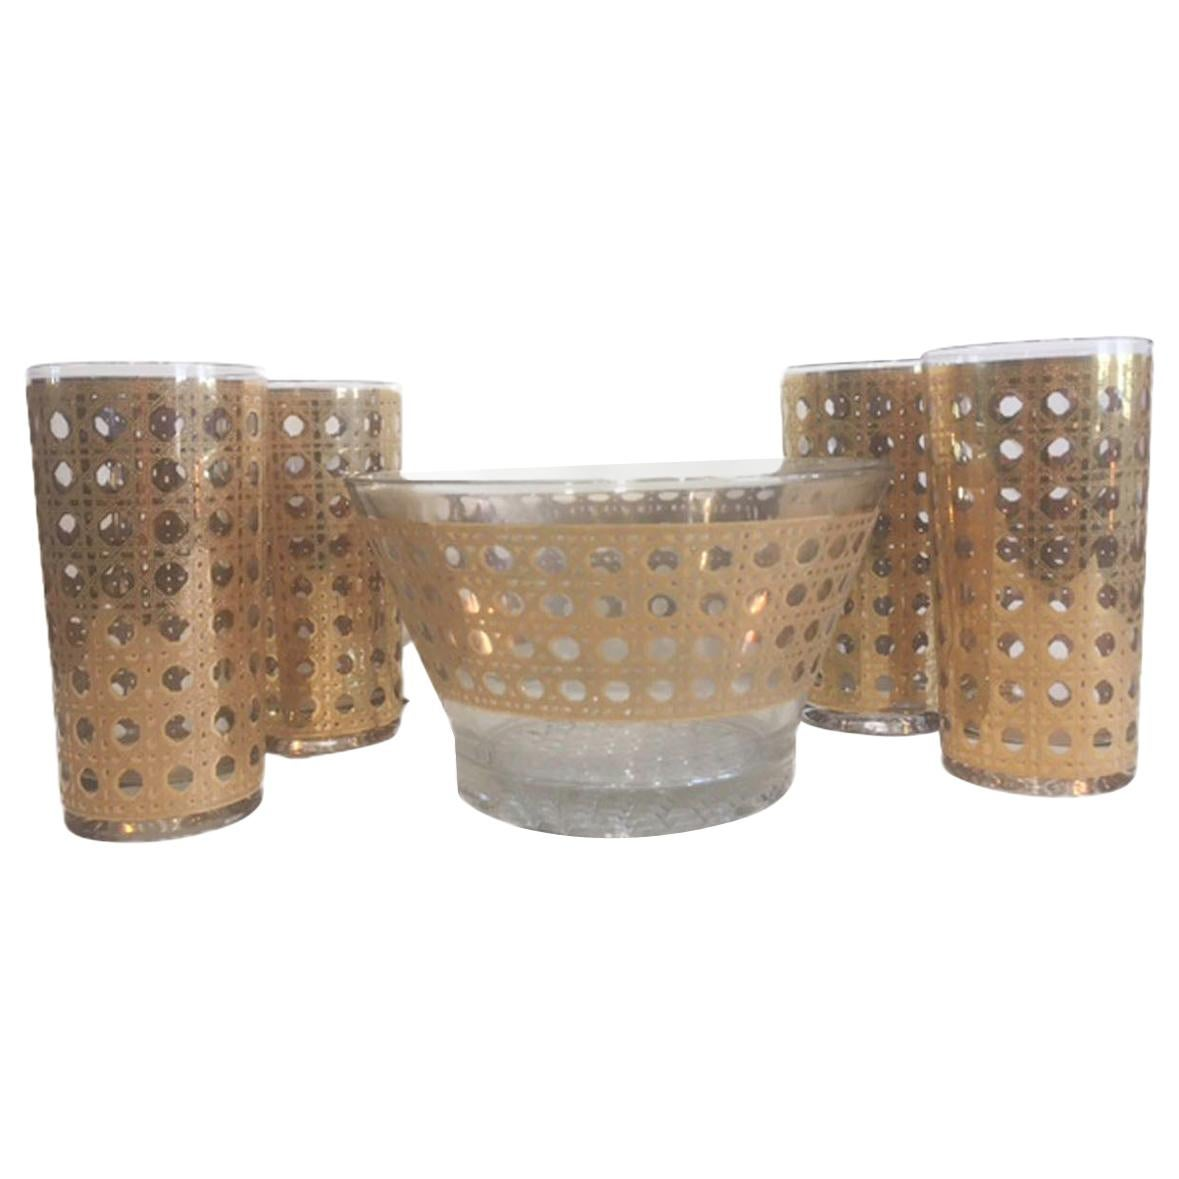 Vintage Ice Bowl Set, Culver Glassware, Ice Bowl and 8 Highball Glasses